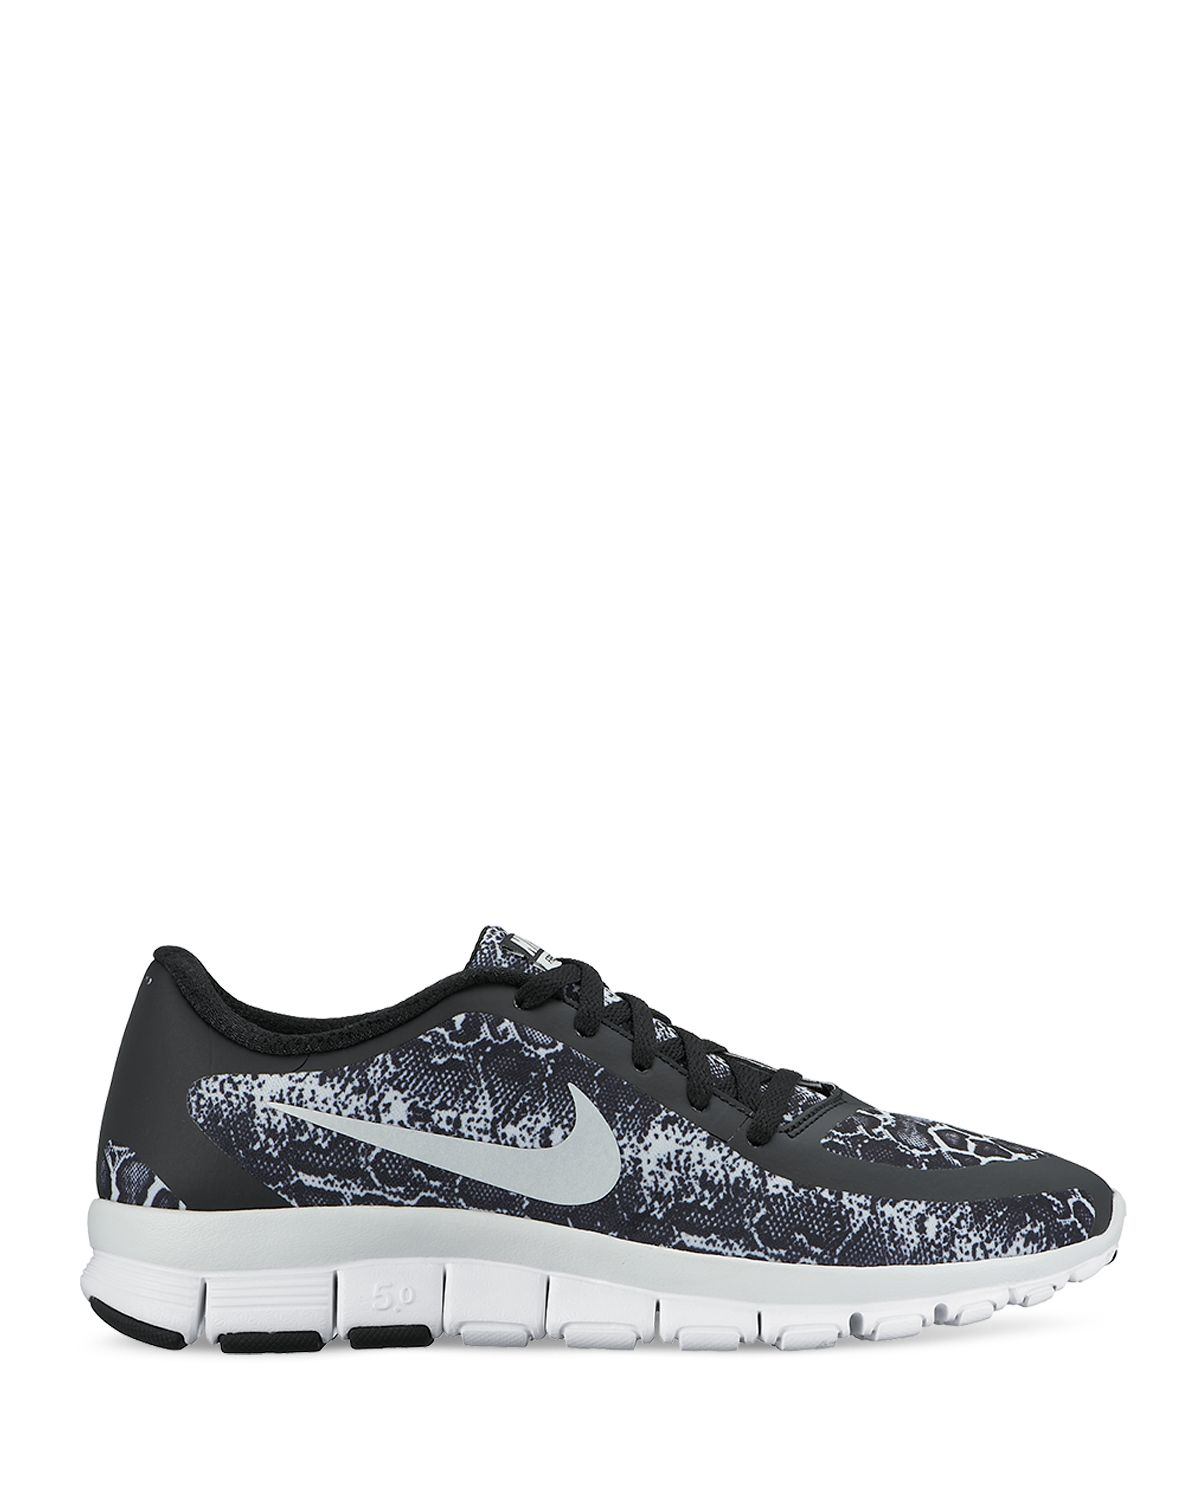 Nike Free 5.0 V4 Running Women's Shoes Size